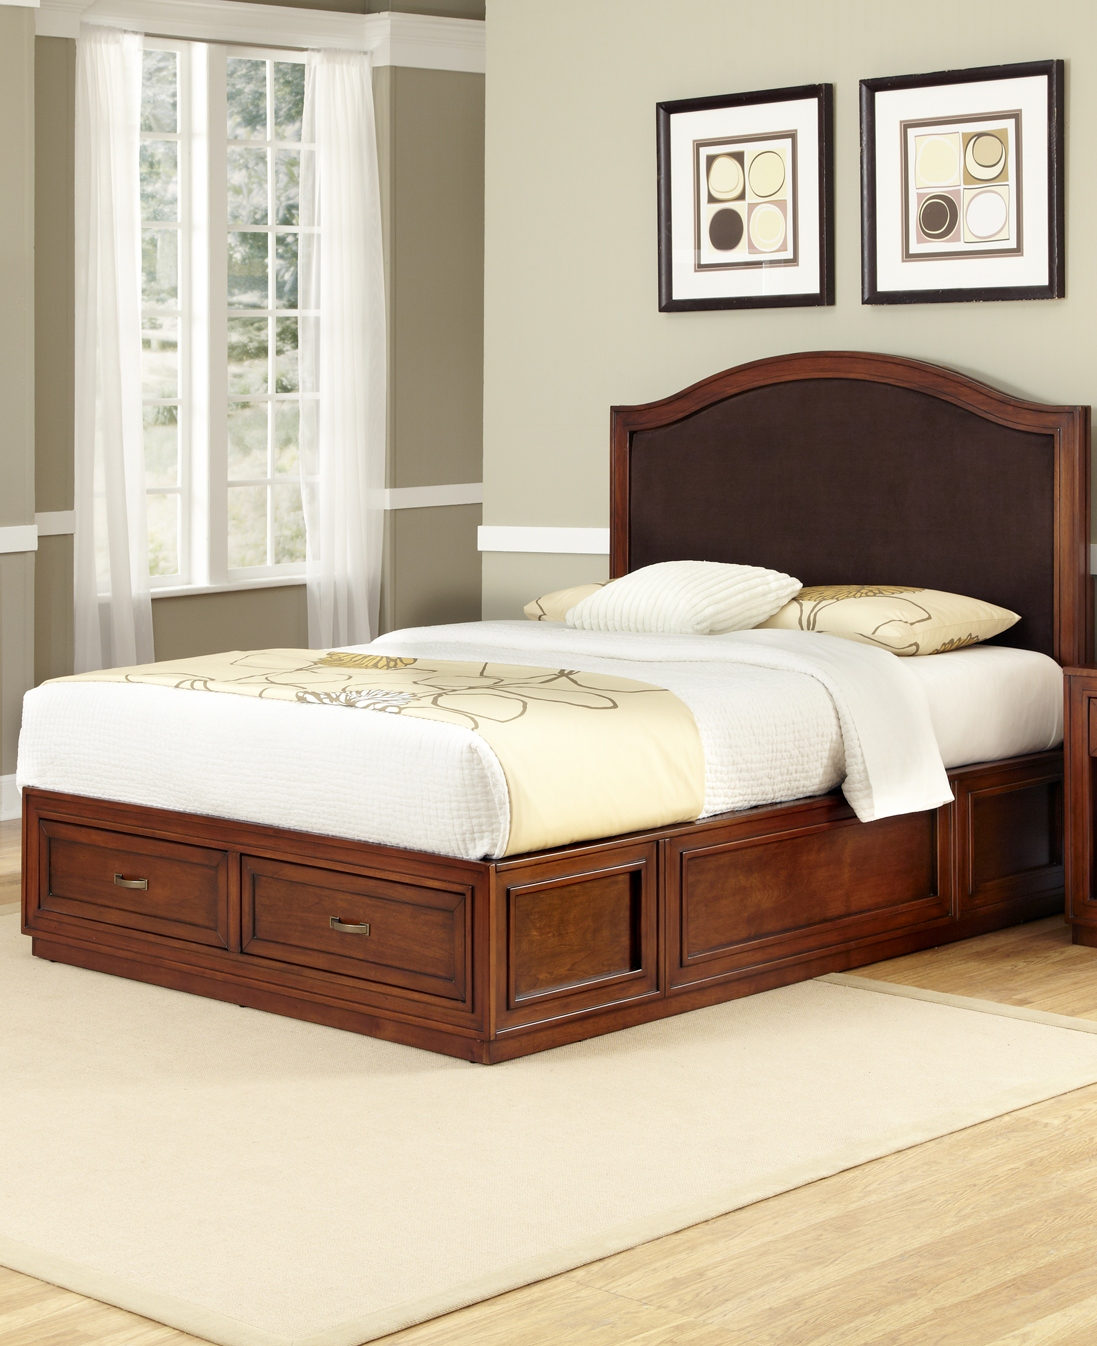 Home Styles Duet Platform King Bed Camelback Brown ...